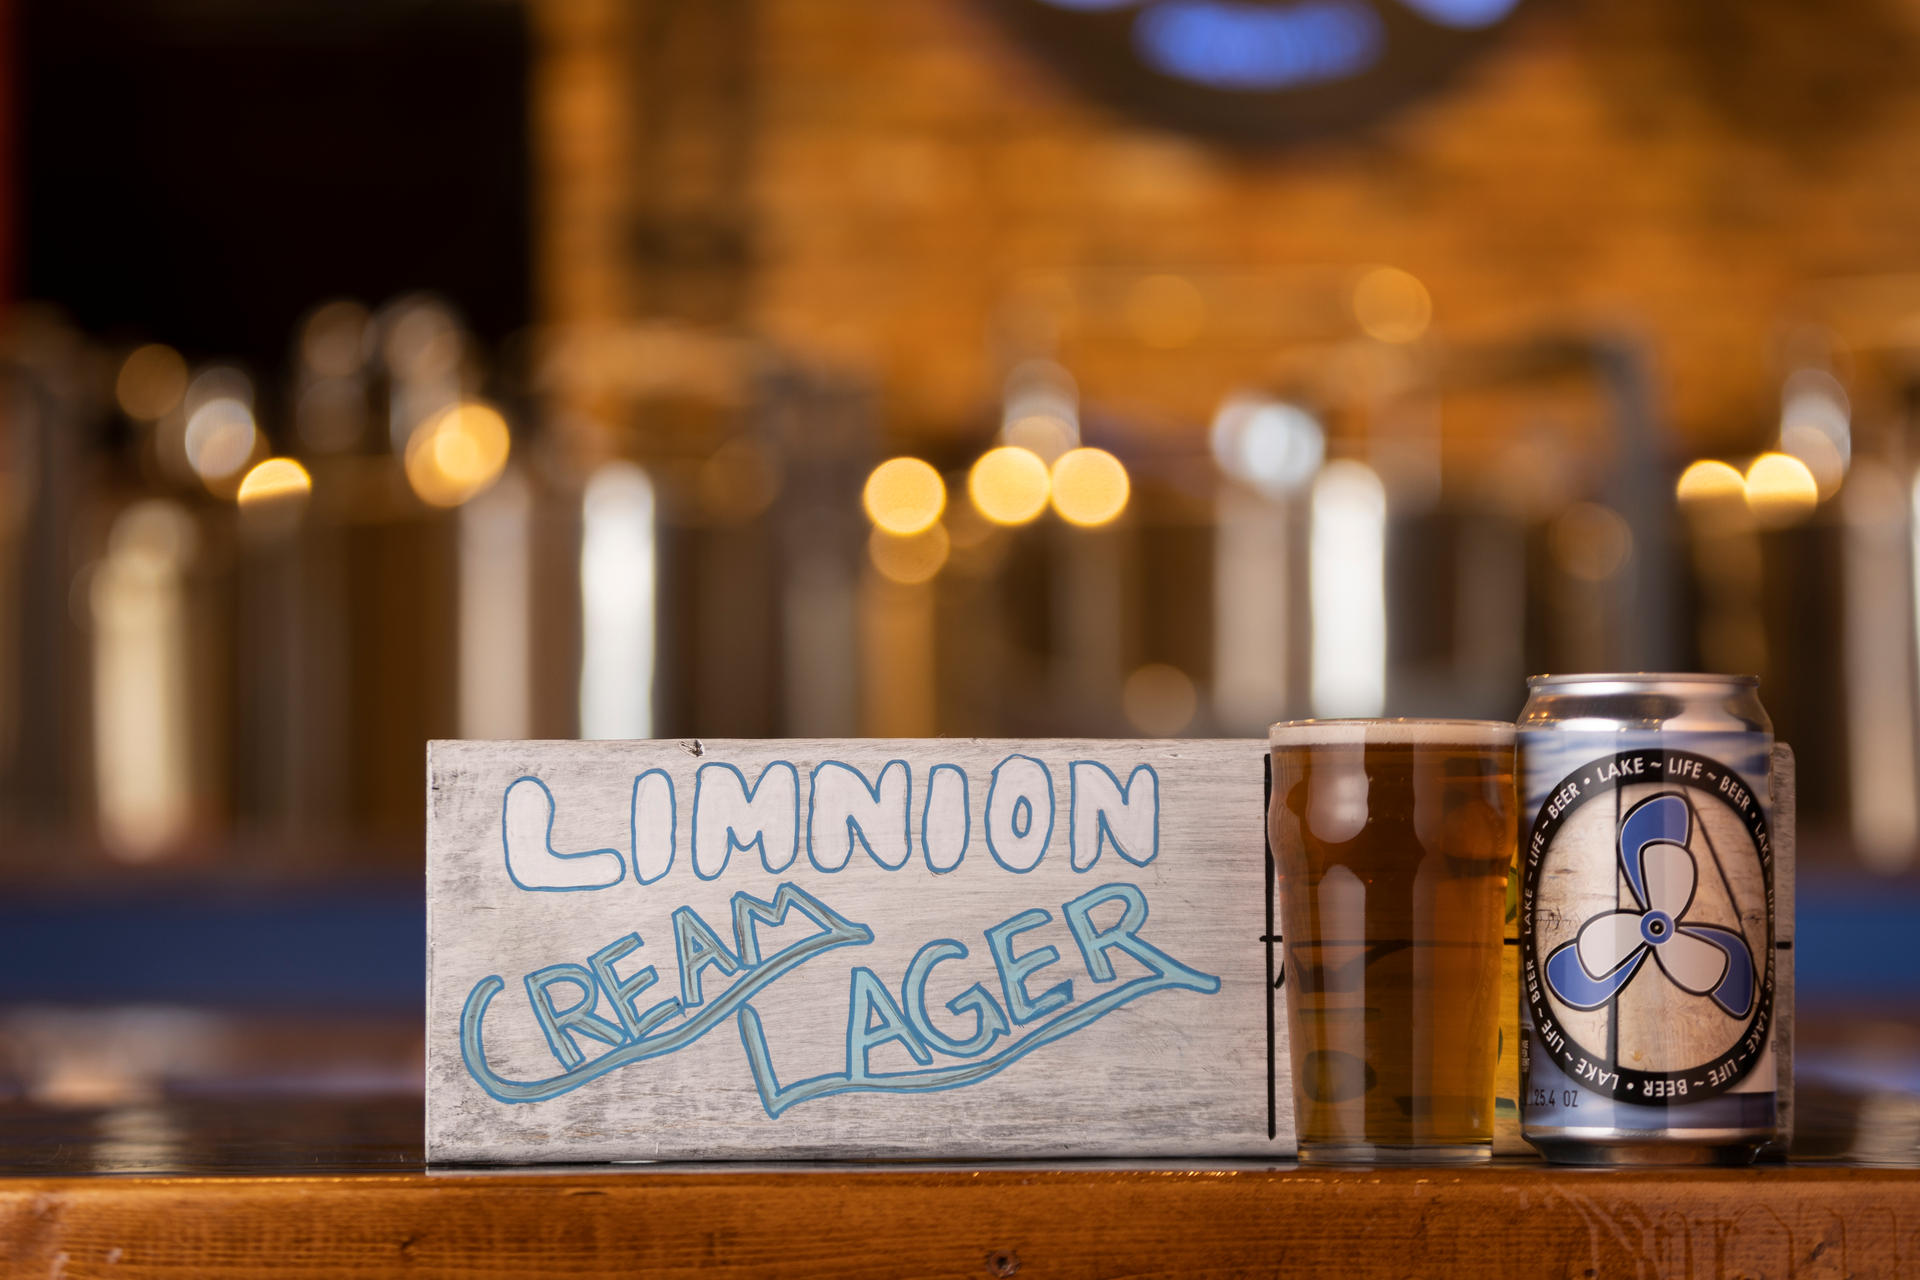 Limnion Cream Lager